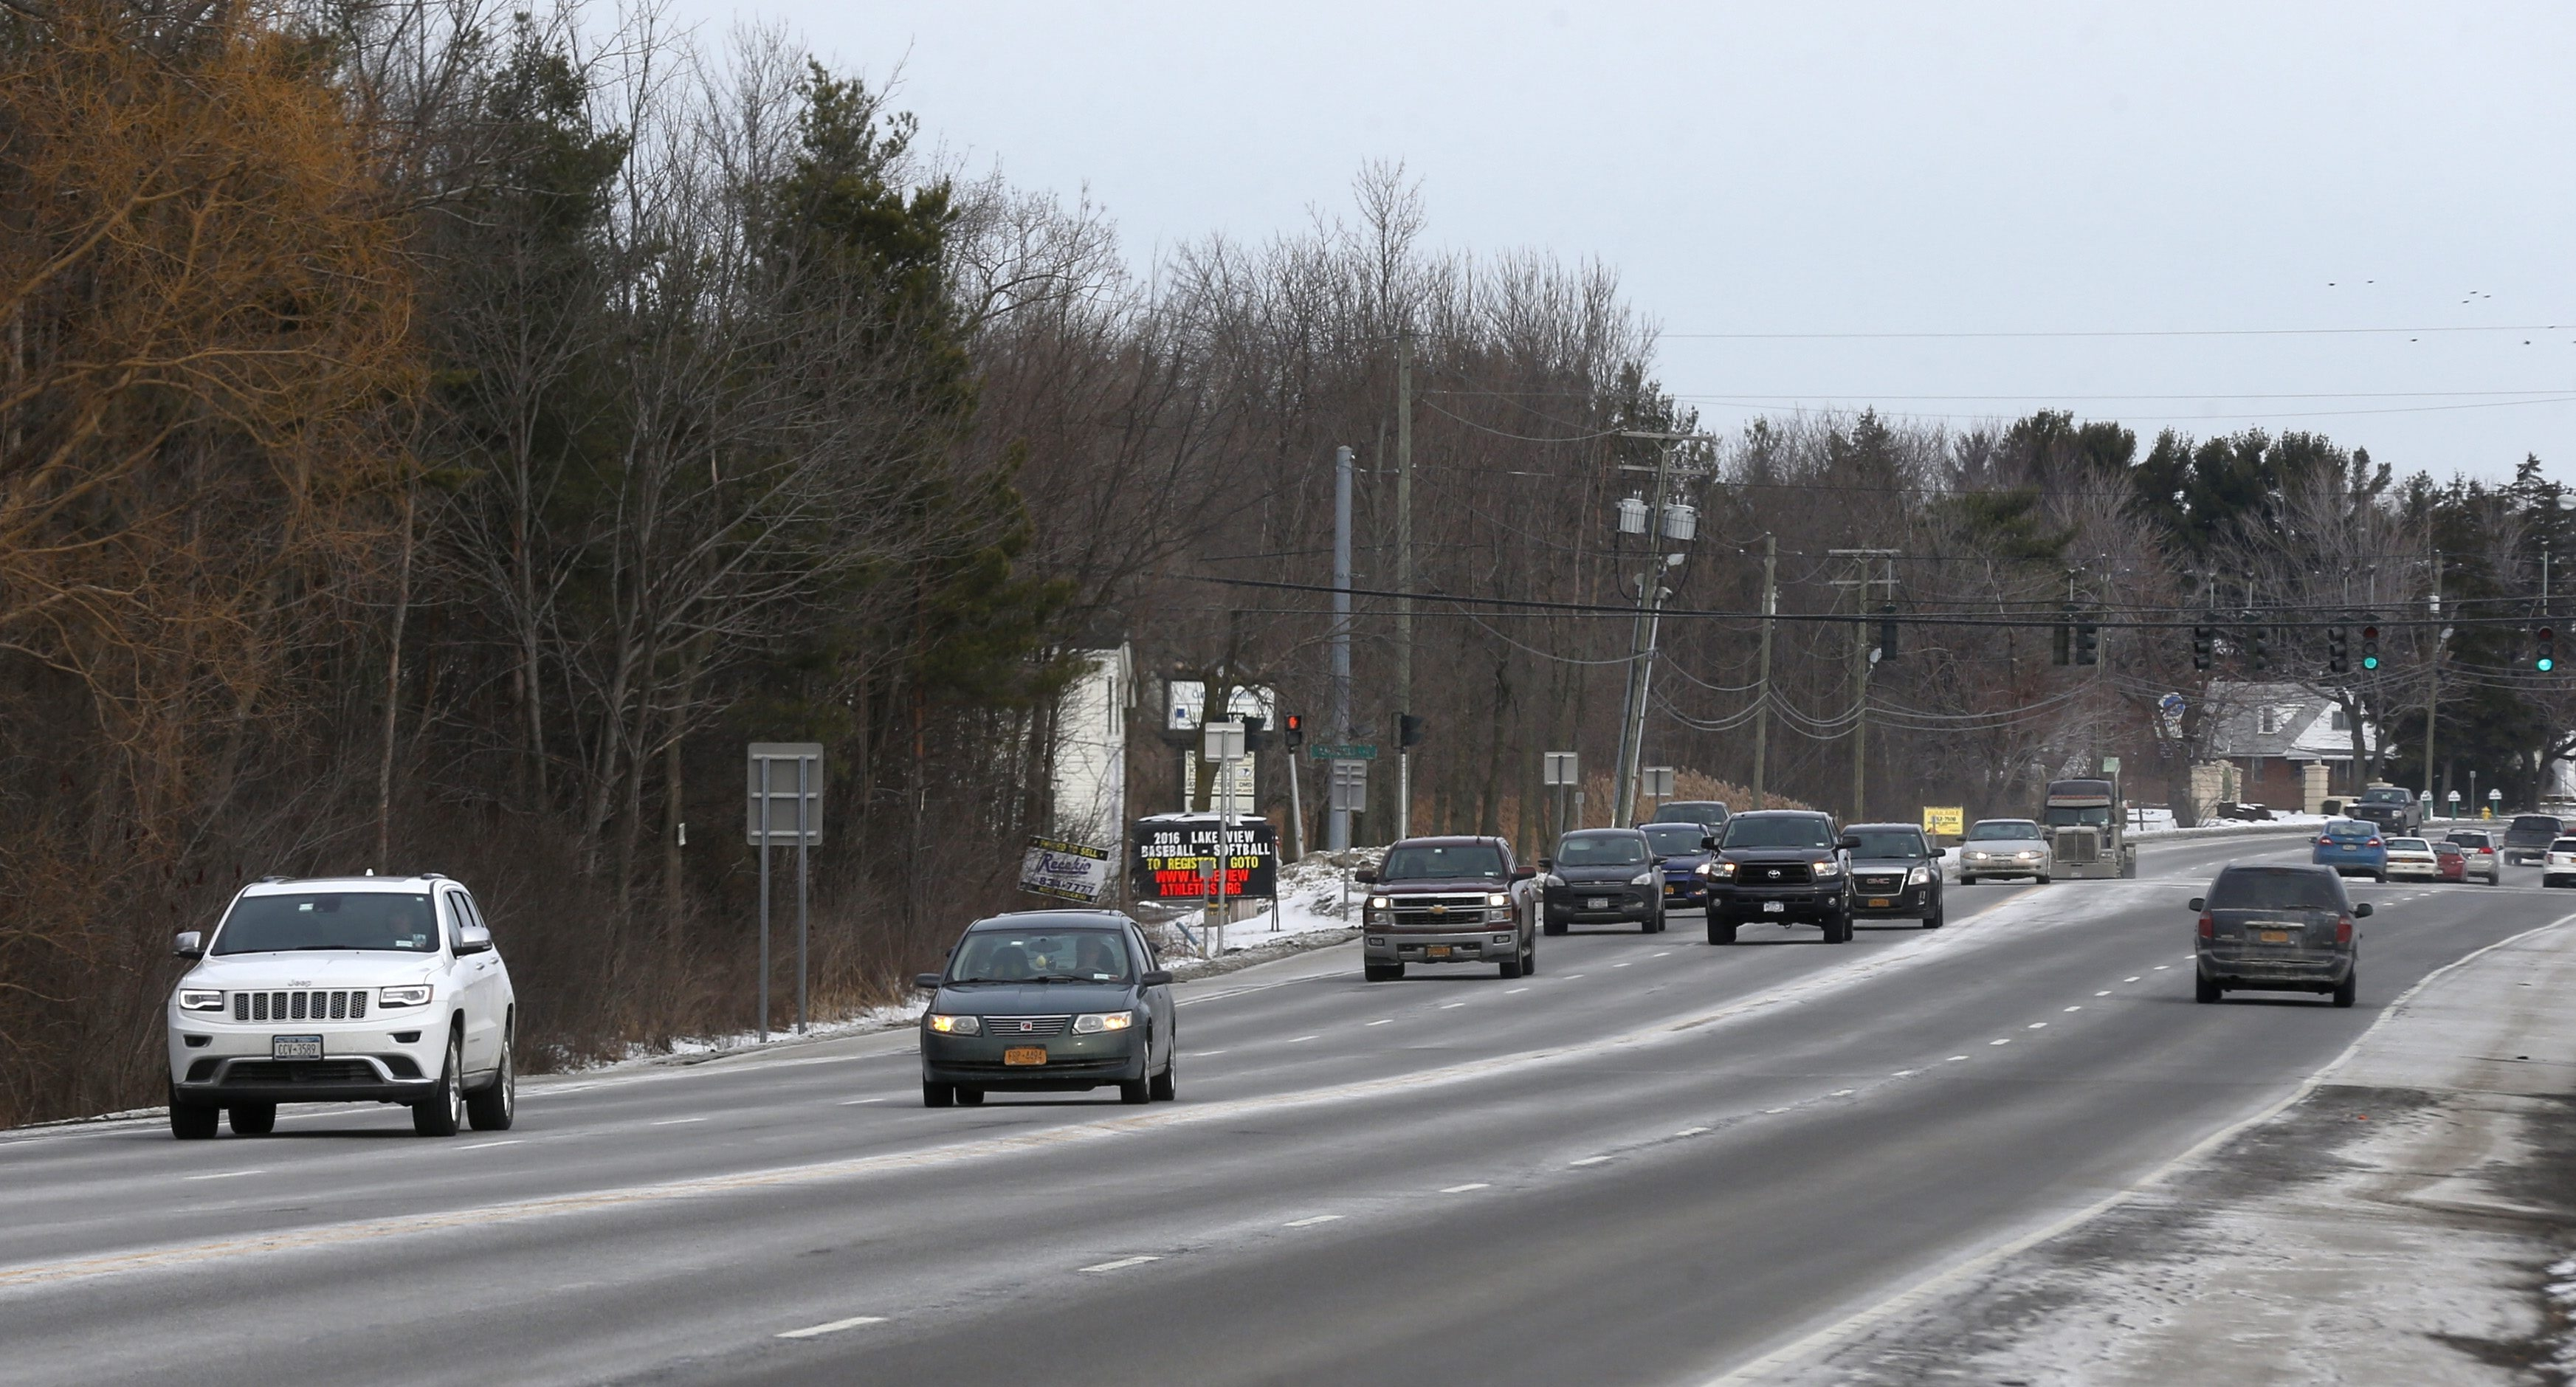 Controversial stretch of Southwestern Boulevard between Pleasant Avenue and Amsdell Road in Hamburg, where there was a fatal accident in July, has residents concerned about safety. They met Monday with officials from the state Department of Transportation.